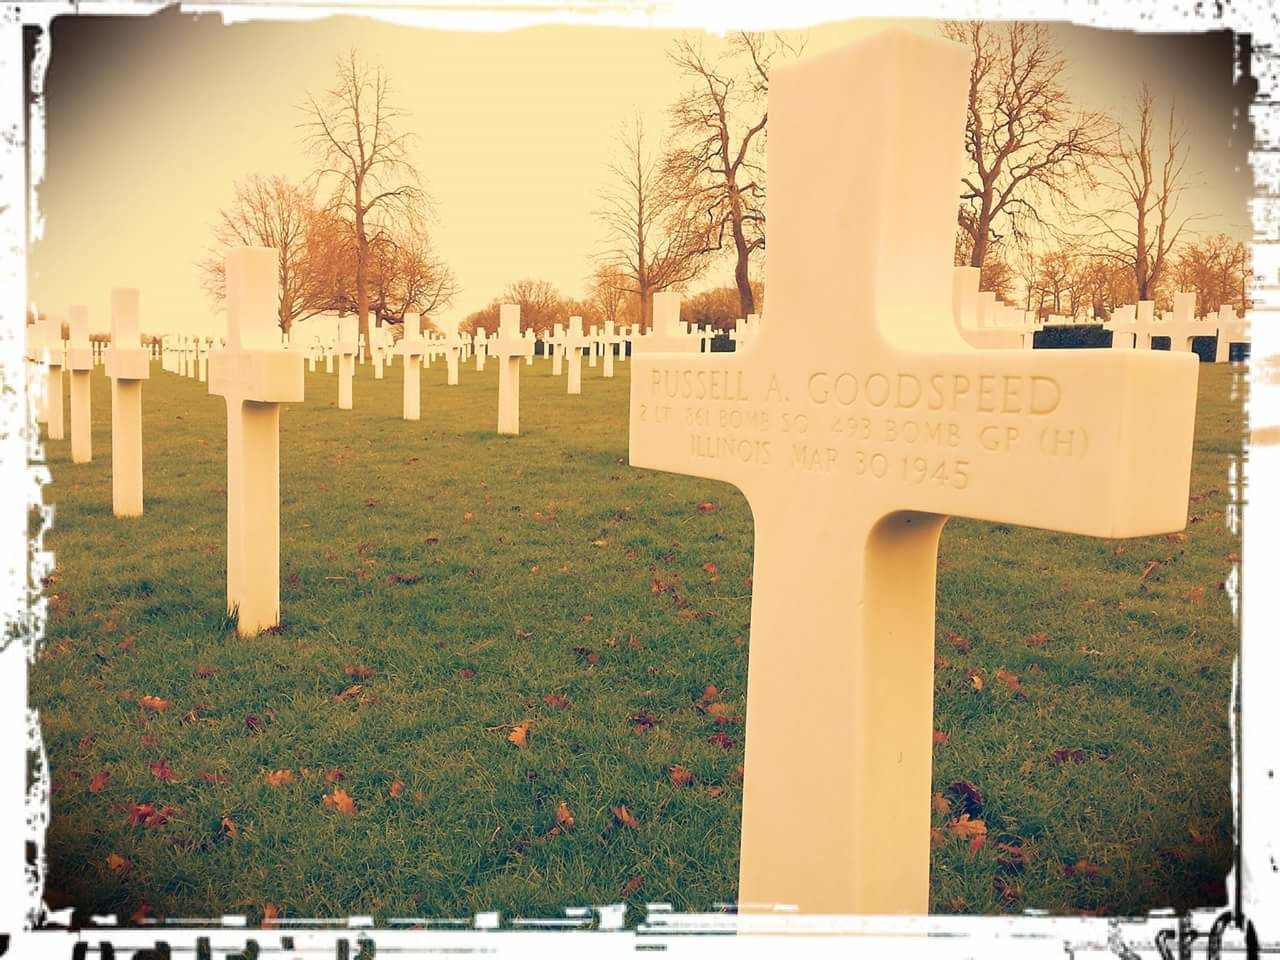 tombstone, cemetery, memorial, tree, grass, outdoors, day, cross, gravestone, no people, graveyard, tranquility, grave, nature